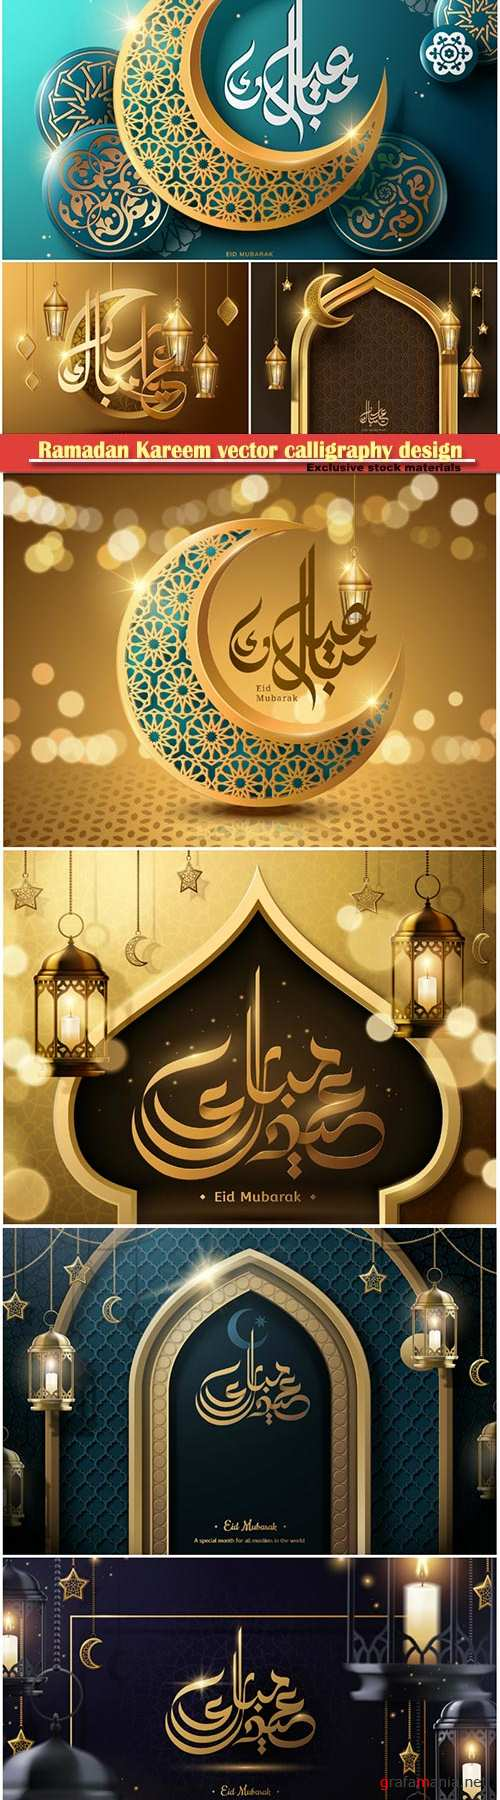 Ramadan Kareem vector calligraphy design with decorative floral pattern, mosque silhouette, crescent and glittering islamic background # 50